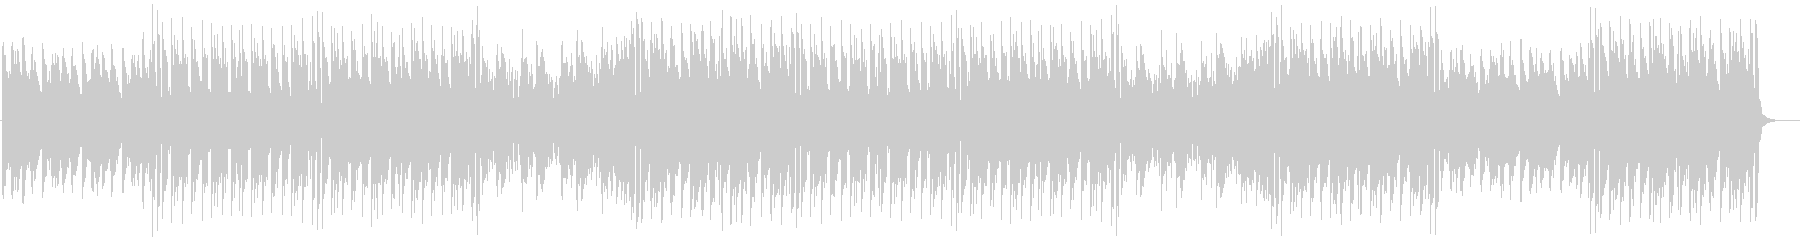 Urban and sophisticated 2 Step/Garage's unreproduced waveform